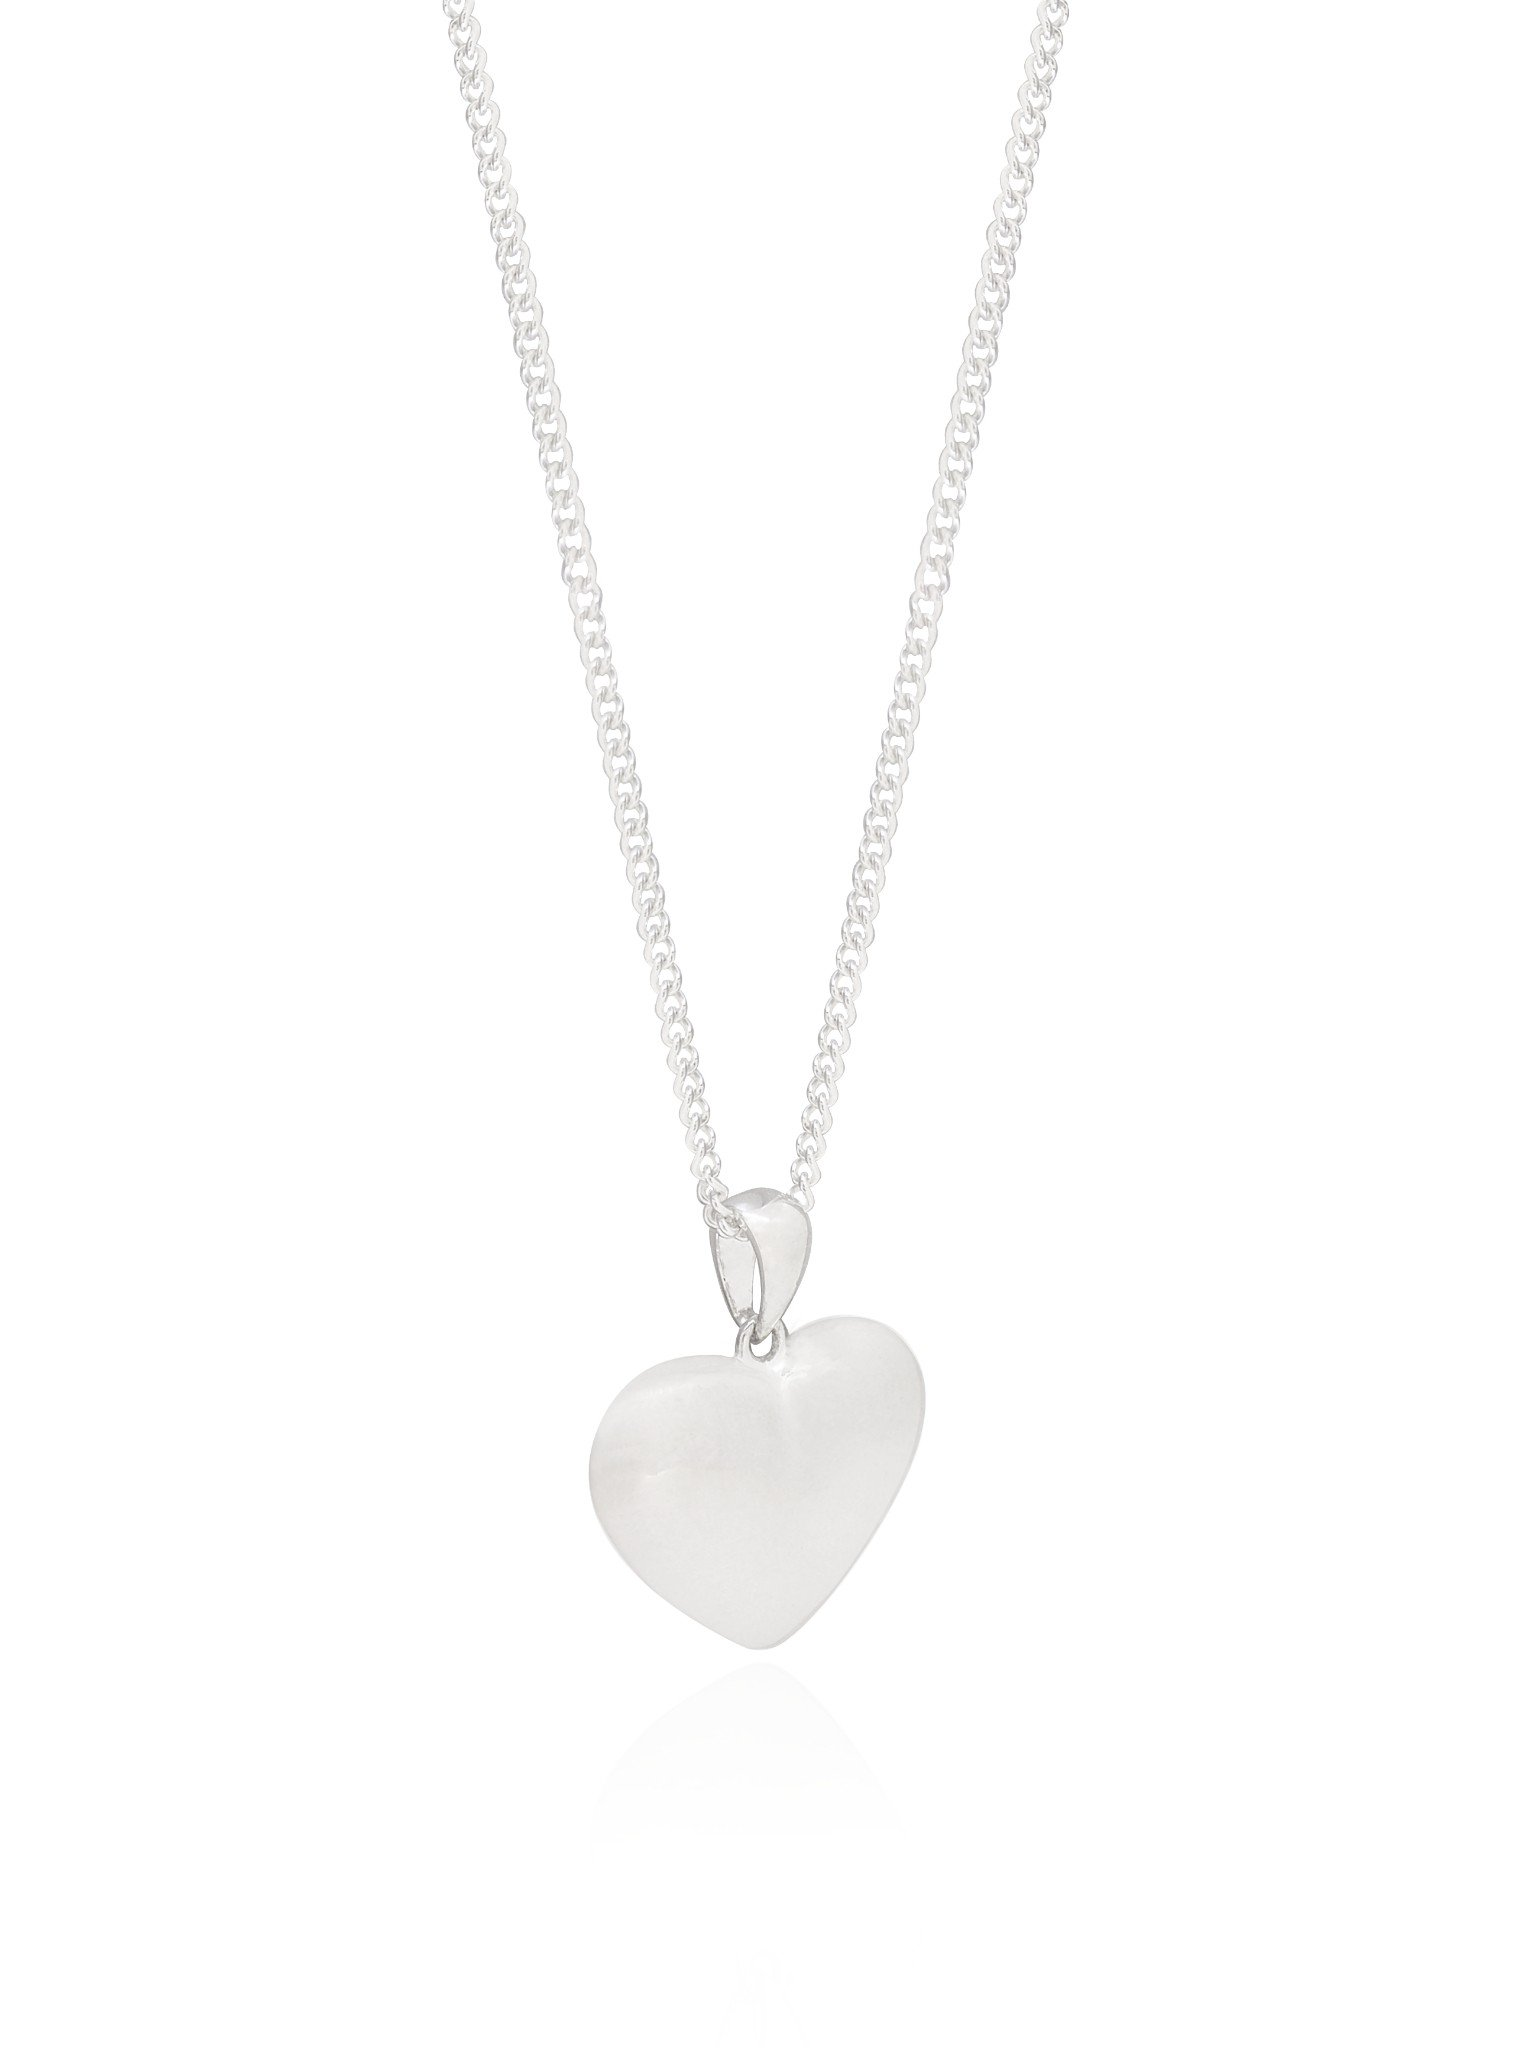 Betty Memorial Heart Pendant Necklace in Sterling Silver